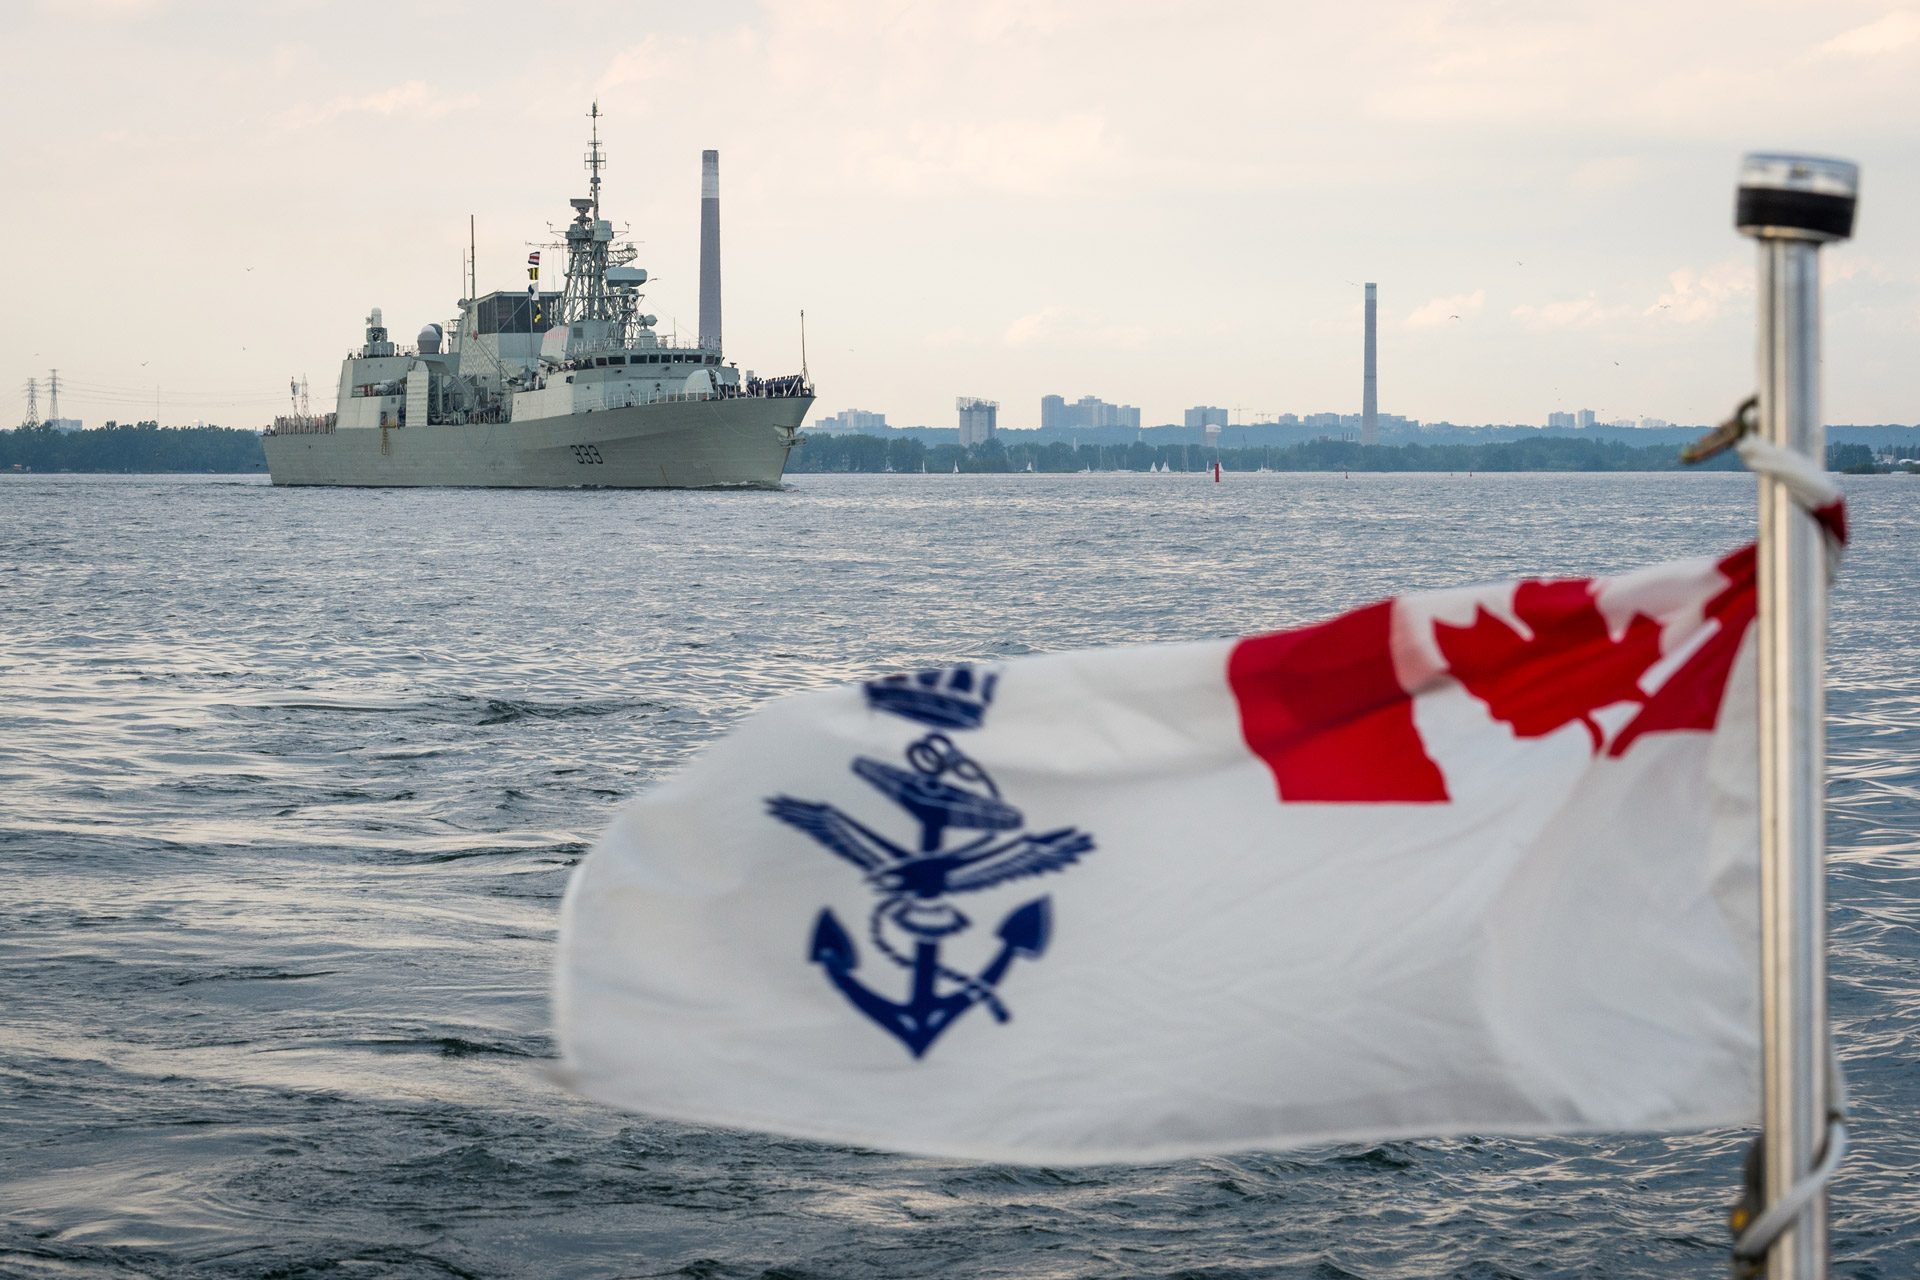 The Naval Ensign on the back of a rigid hull inflatable boat flies as HMCS Toronto leaves her namesake port during Canada 150 celebrations. Until the CSC's arrival, the RCN's 12 Halifax-class vessels will be serving as the backbone of the Navy. As such, the fleet has undergone a modernization of its combat systems and a mid-life refit to ensure the frigates remain effective throughout their service life. (cpl kenneth galbraith, dnd)